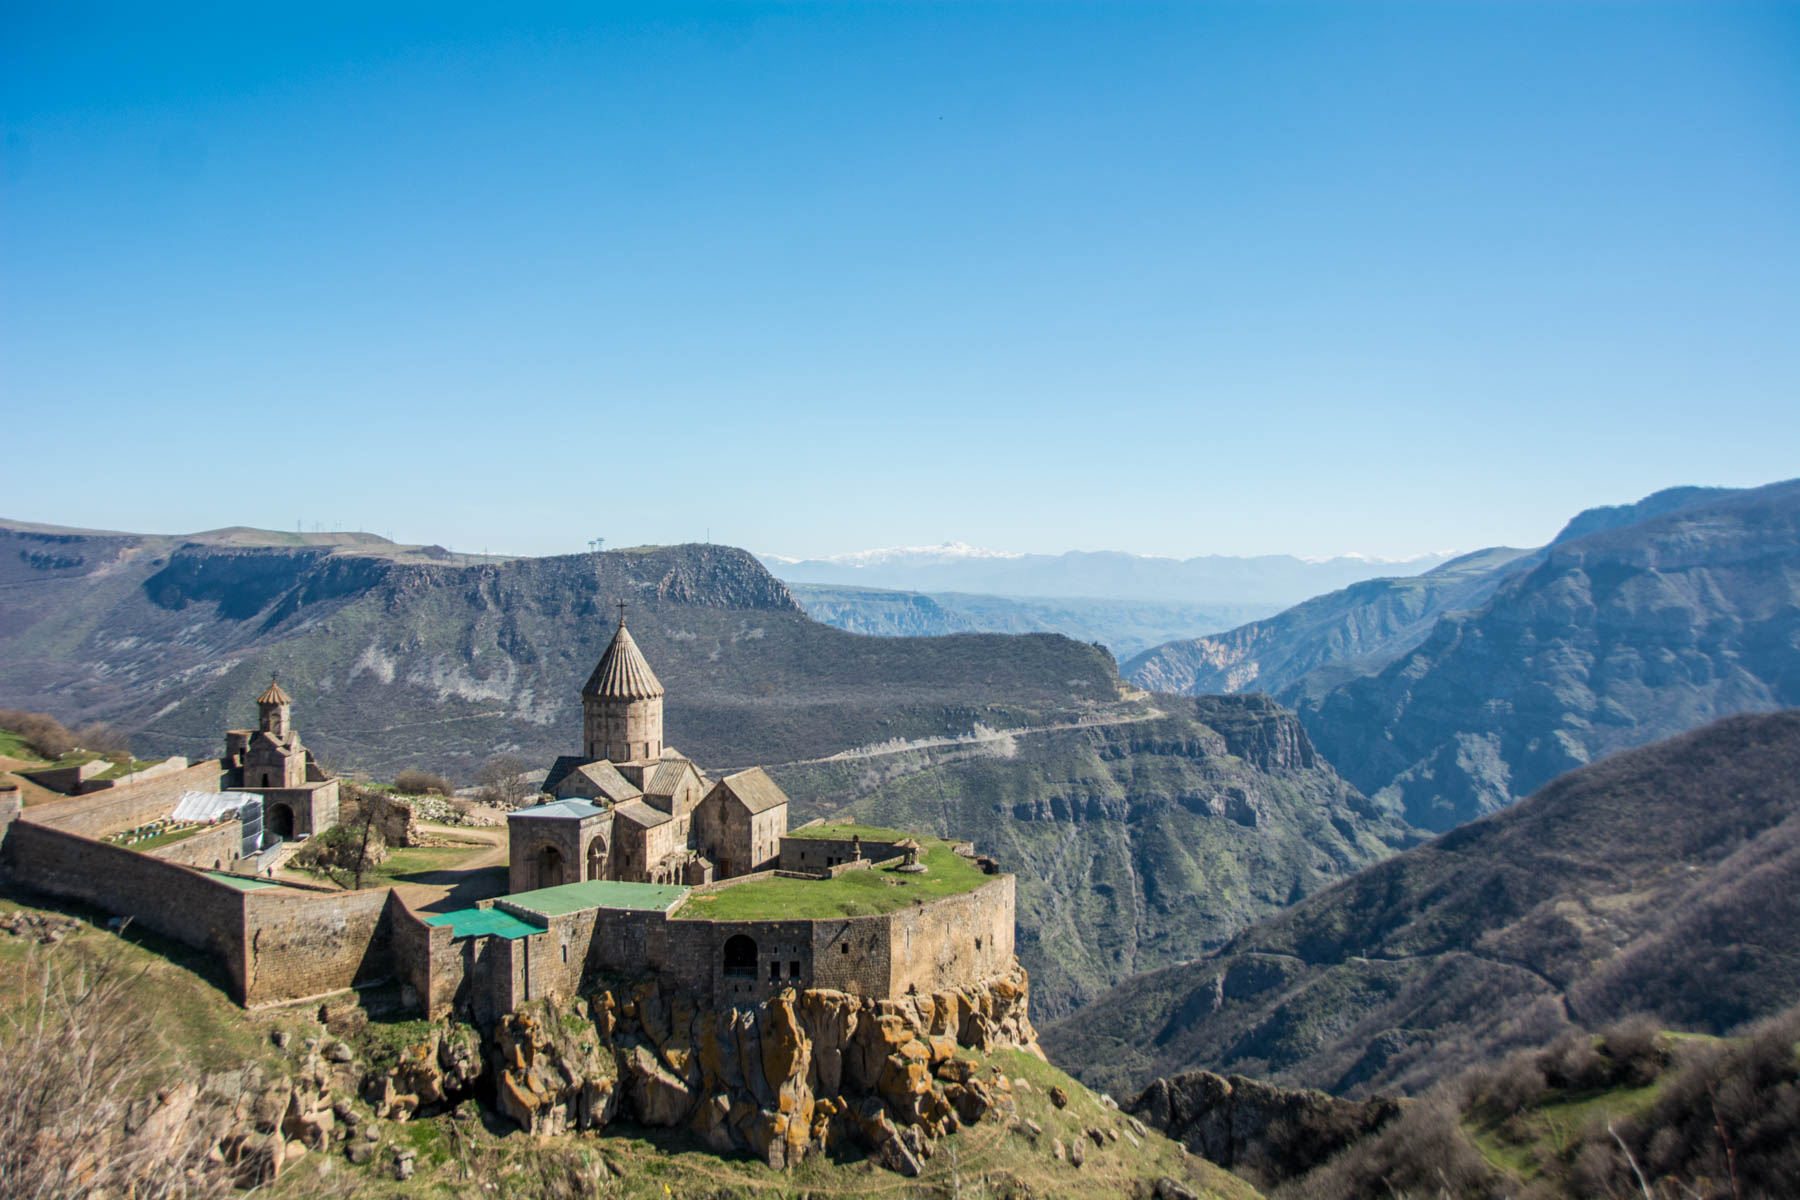 Why visit Armenia: The breathtaking monastery of Tatev, one of the most famous historical sites in Armenia.